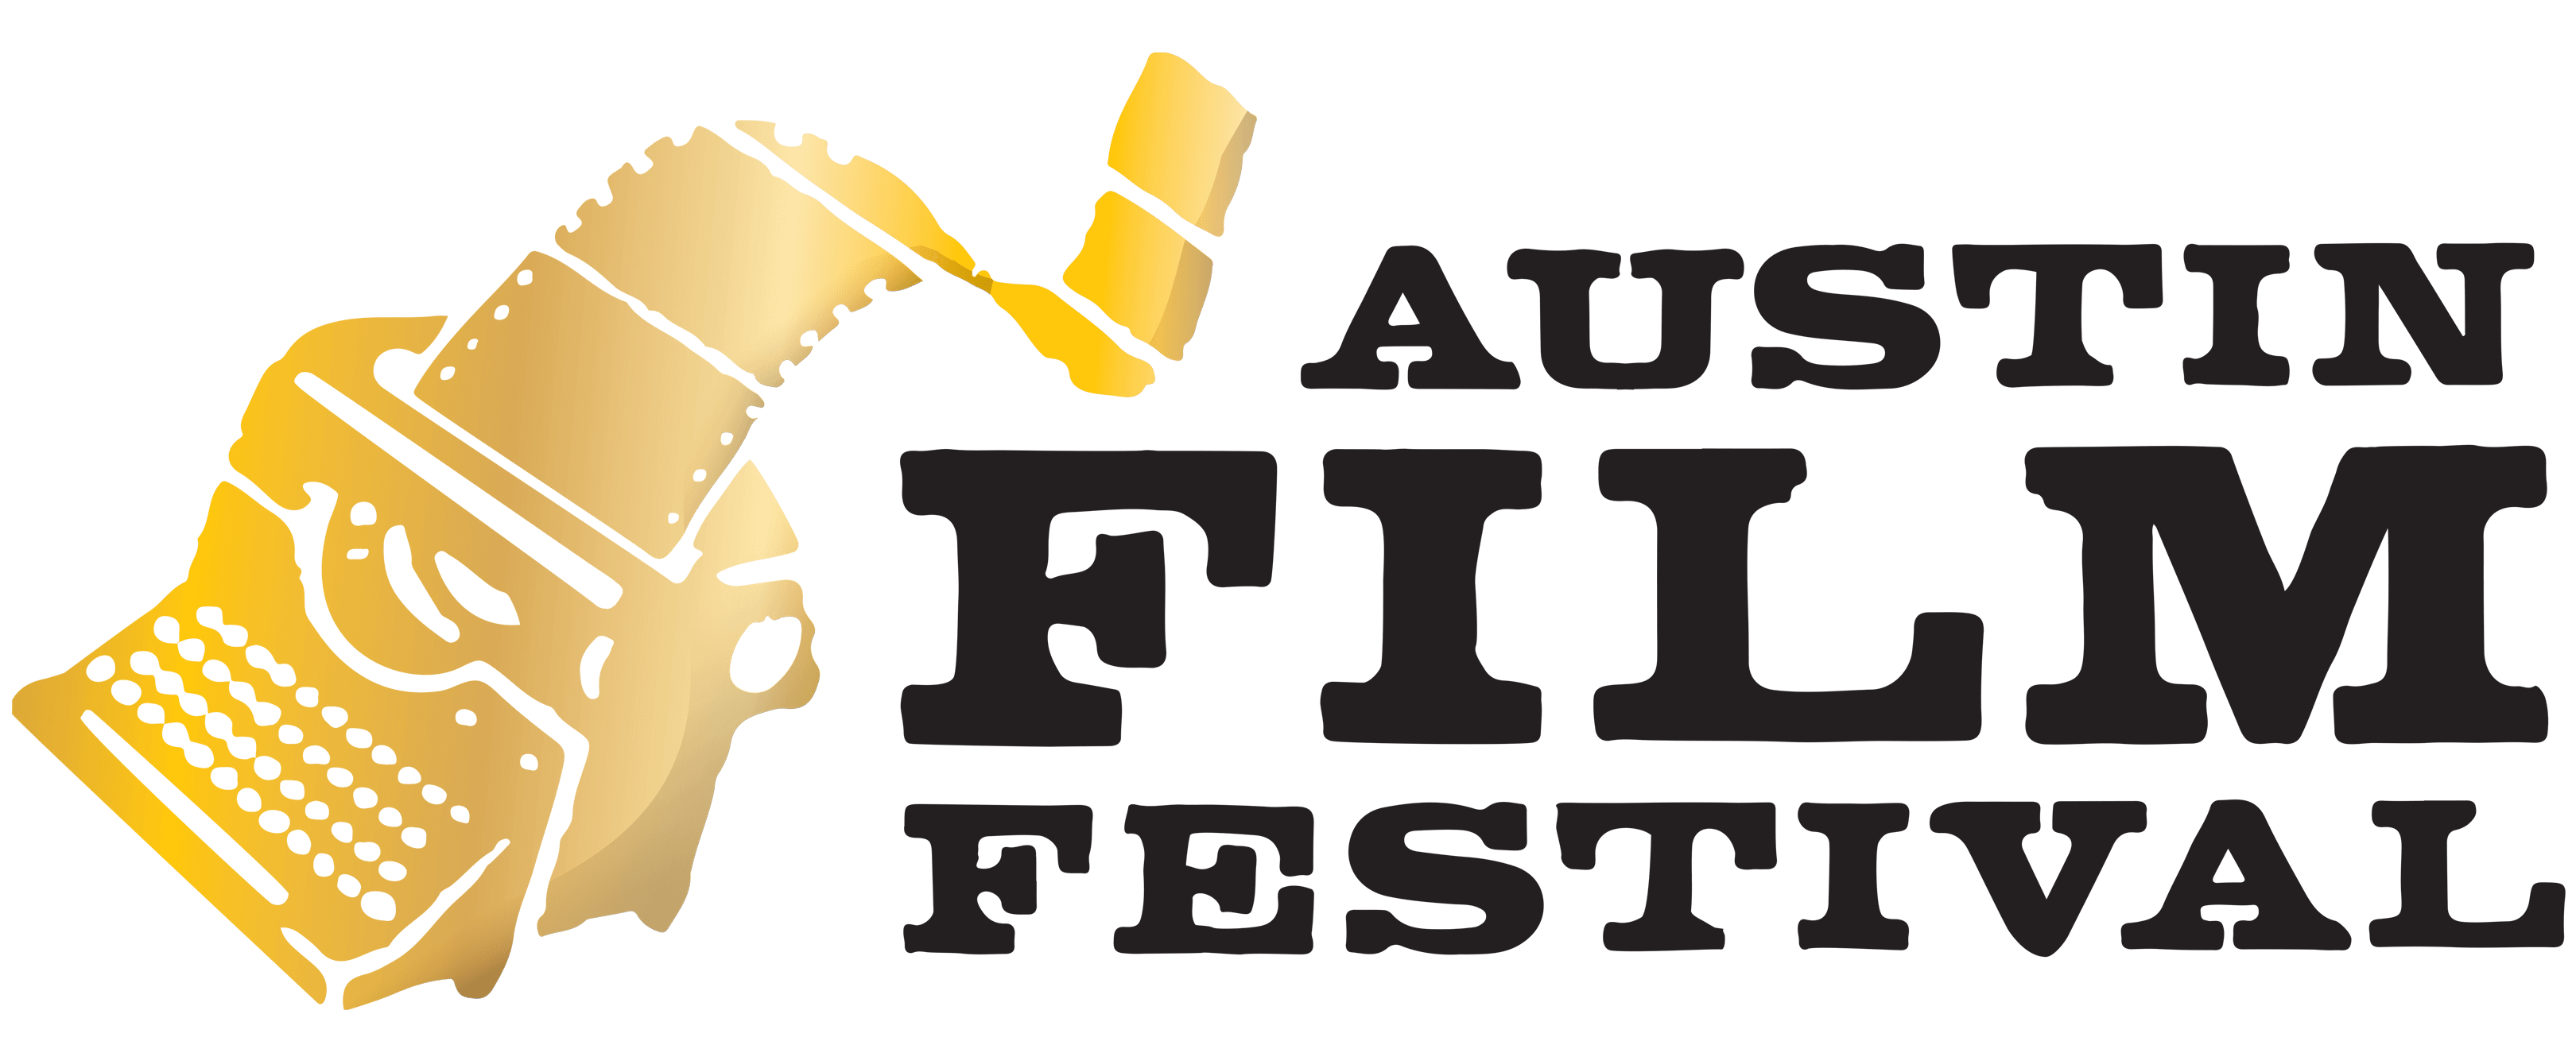 Best Screenwriting Contests - Austin Film Festival